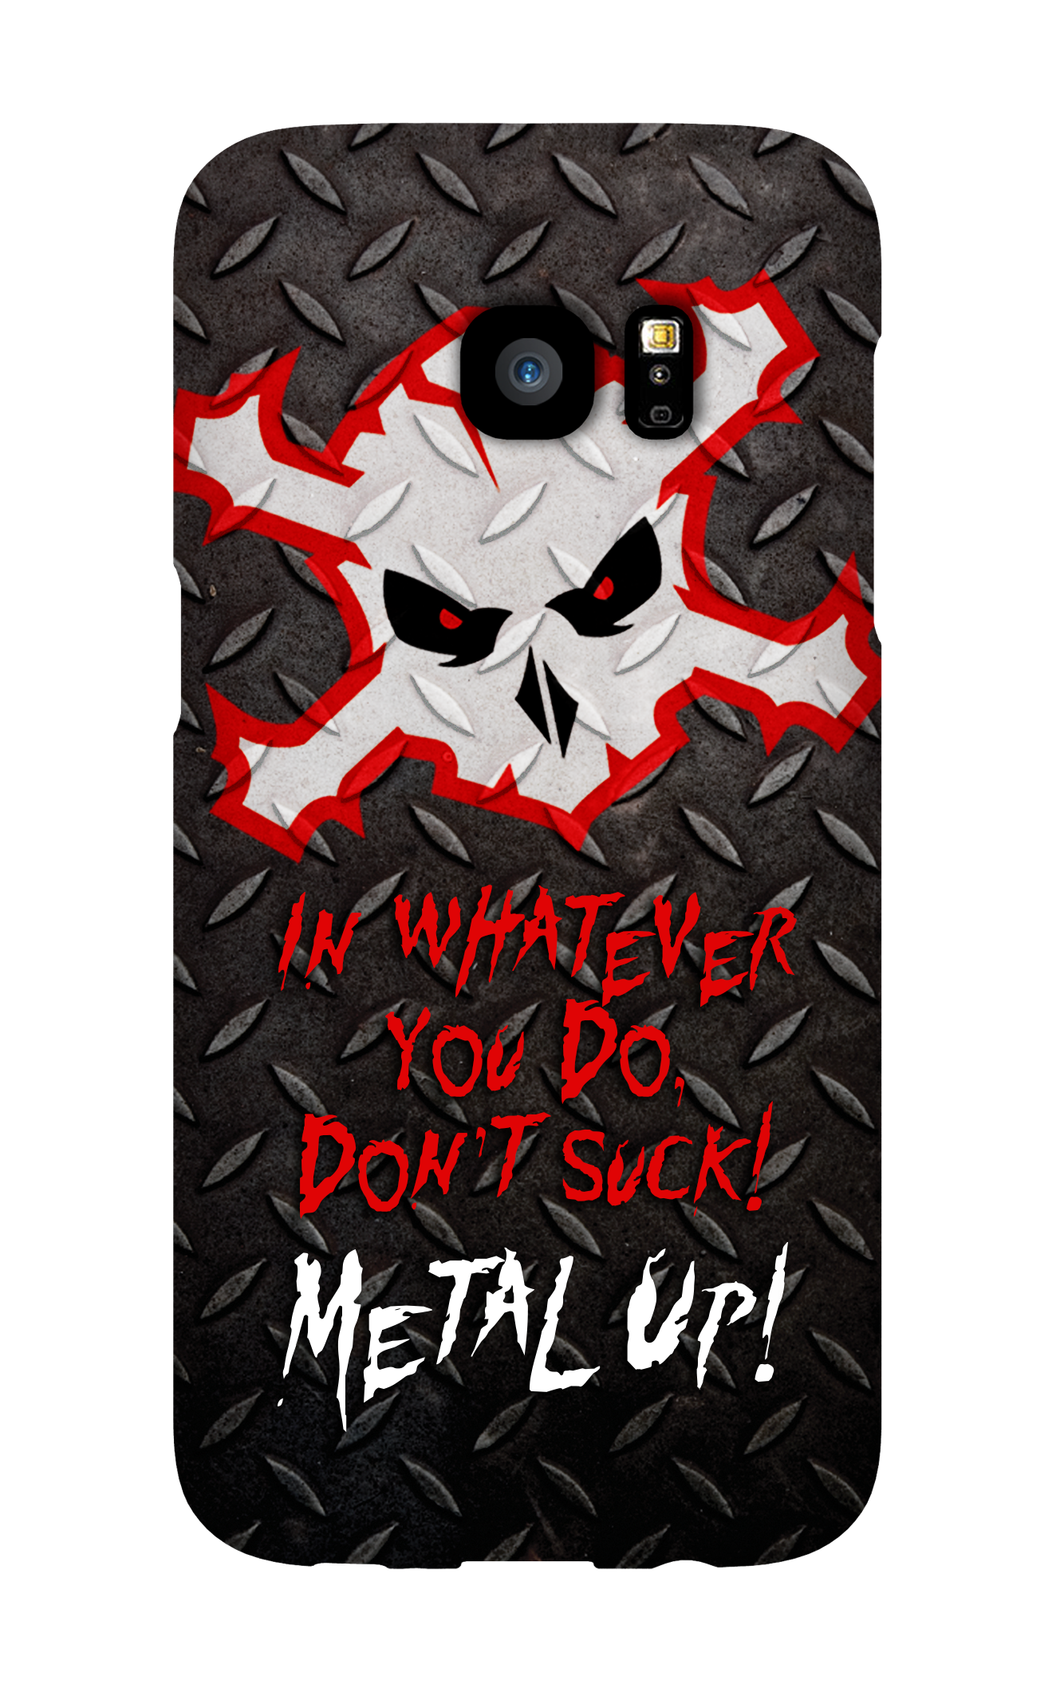 Metal Up! Galaxy S7 Edge Case